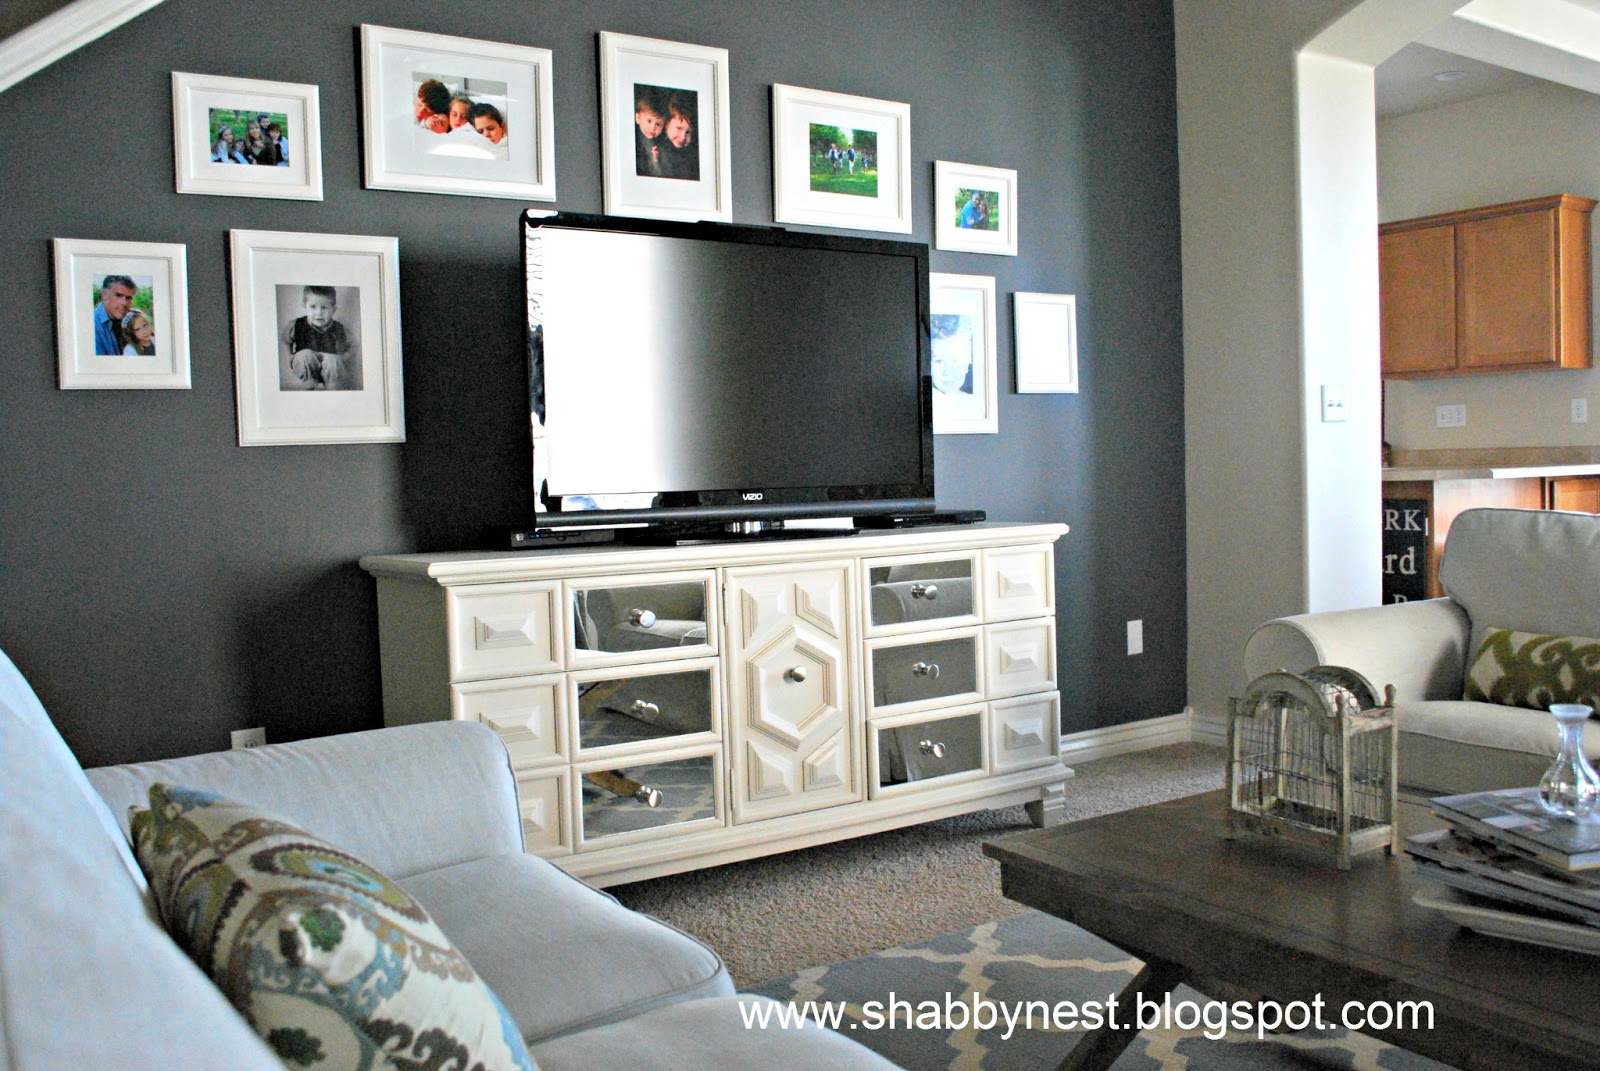 The shabby nest kitchen update ideas for Living room accent wall ideas